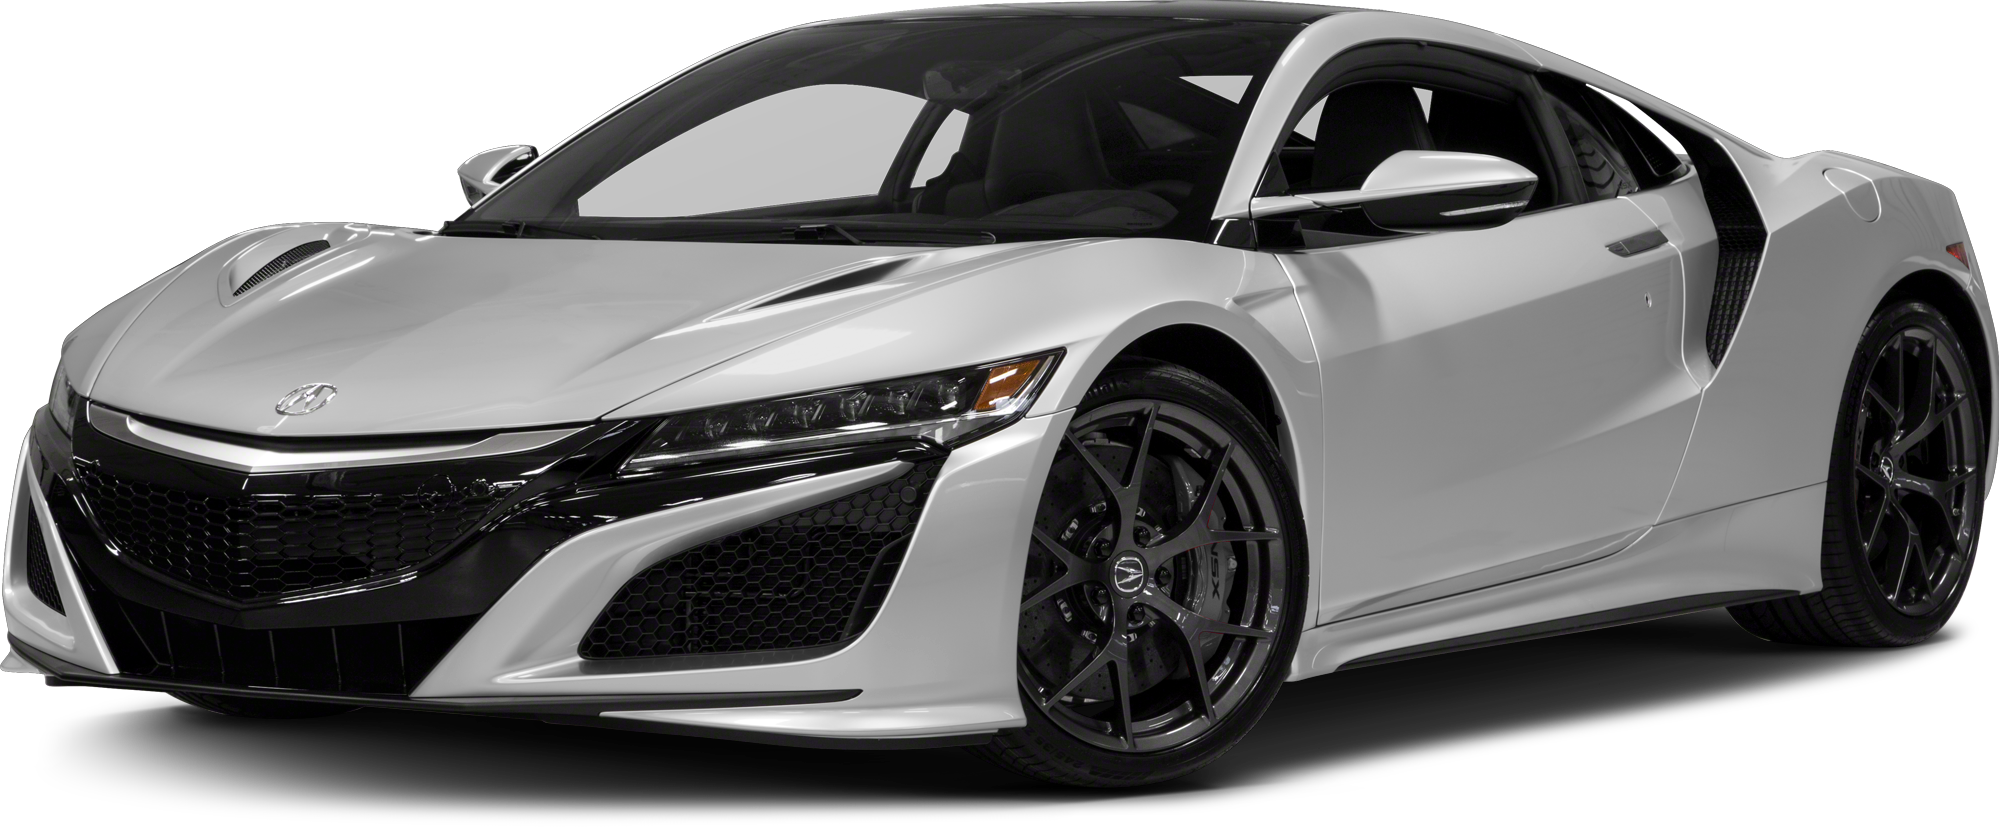 2019 Acura NSX Coupe